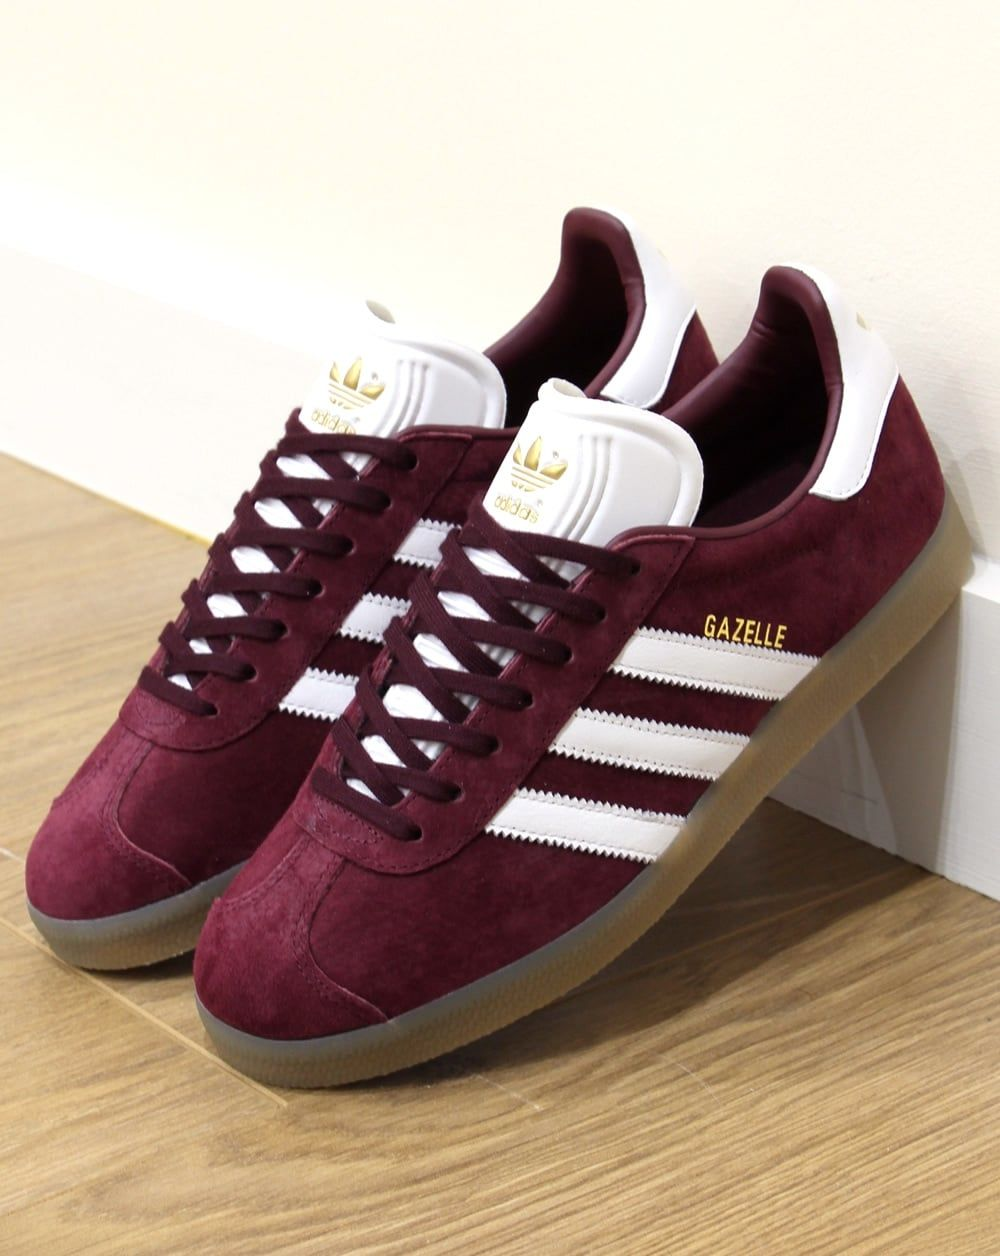 buy online be441 a5e7d Adidas Gazelle Trainers MaroonWhiteGum,suede originals,80s,90s